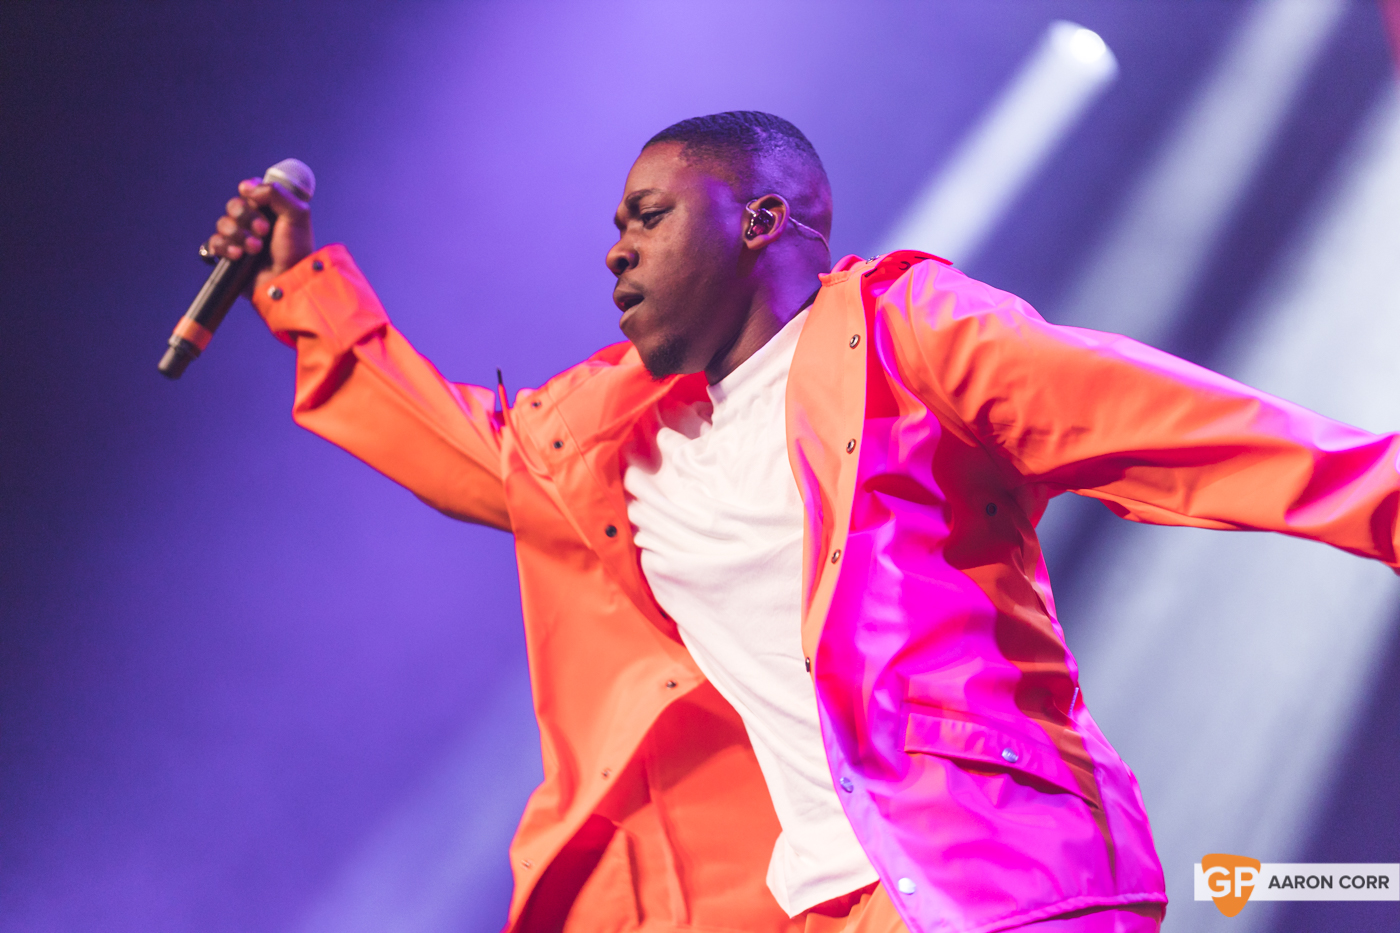 Jafaris at Choice Music Prize 2020 in Vicar Street, Dublin on 05-Mar-20 by Aaron Corr-2598